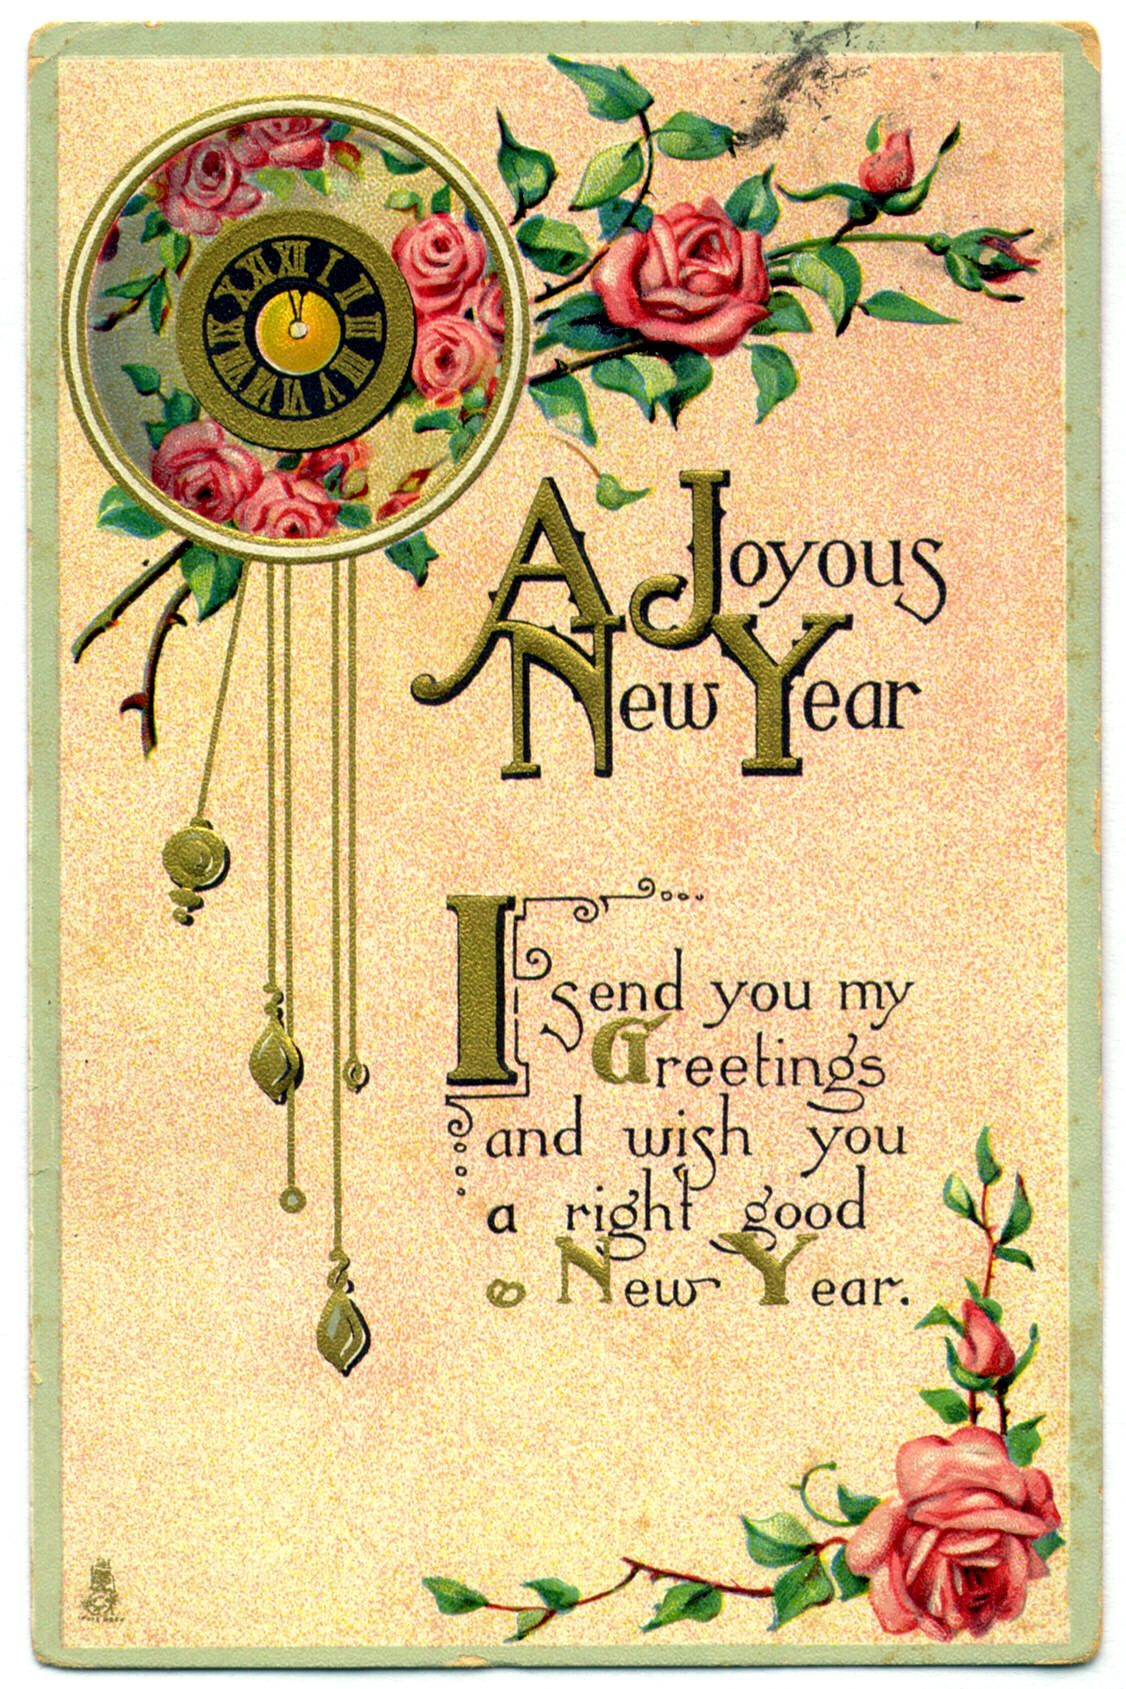 A joyous new year i send you my greetings and wish you a right a joyous new year i send you my greetings and wish you a right good kristyandbryce Choice Image